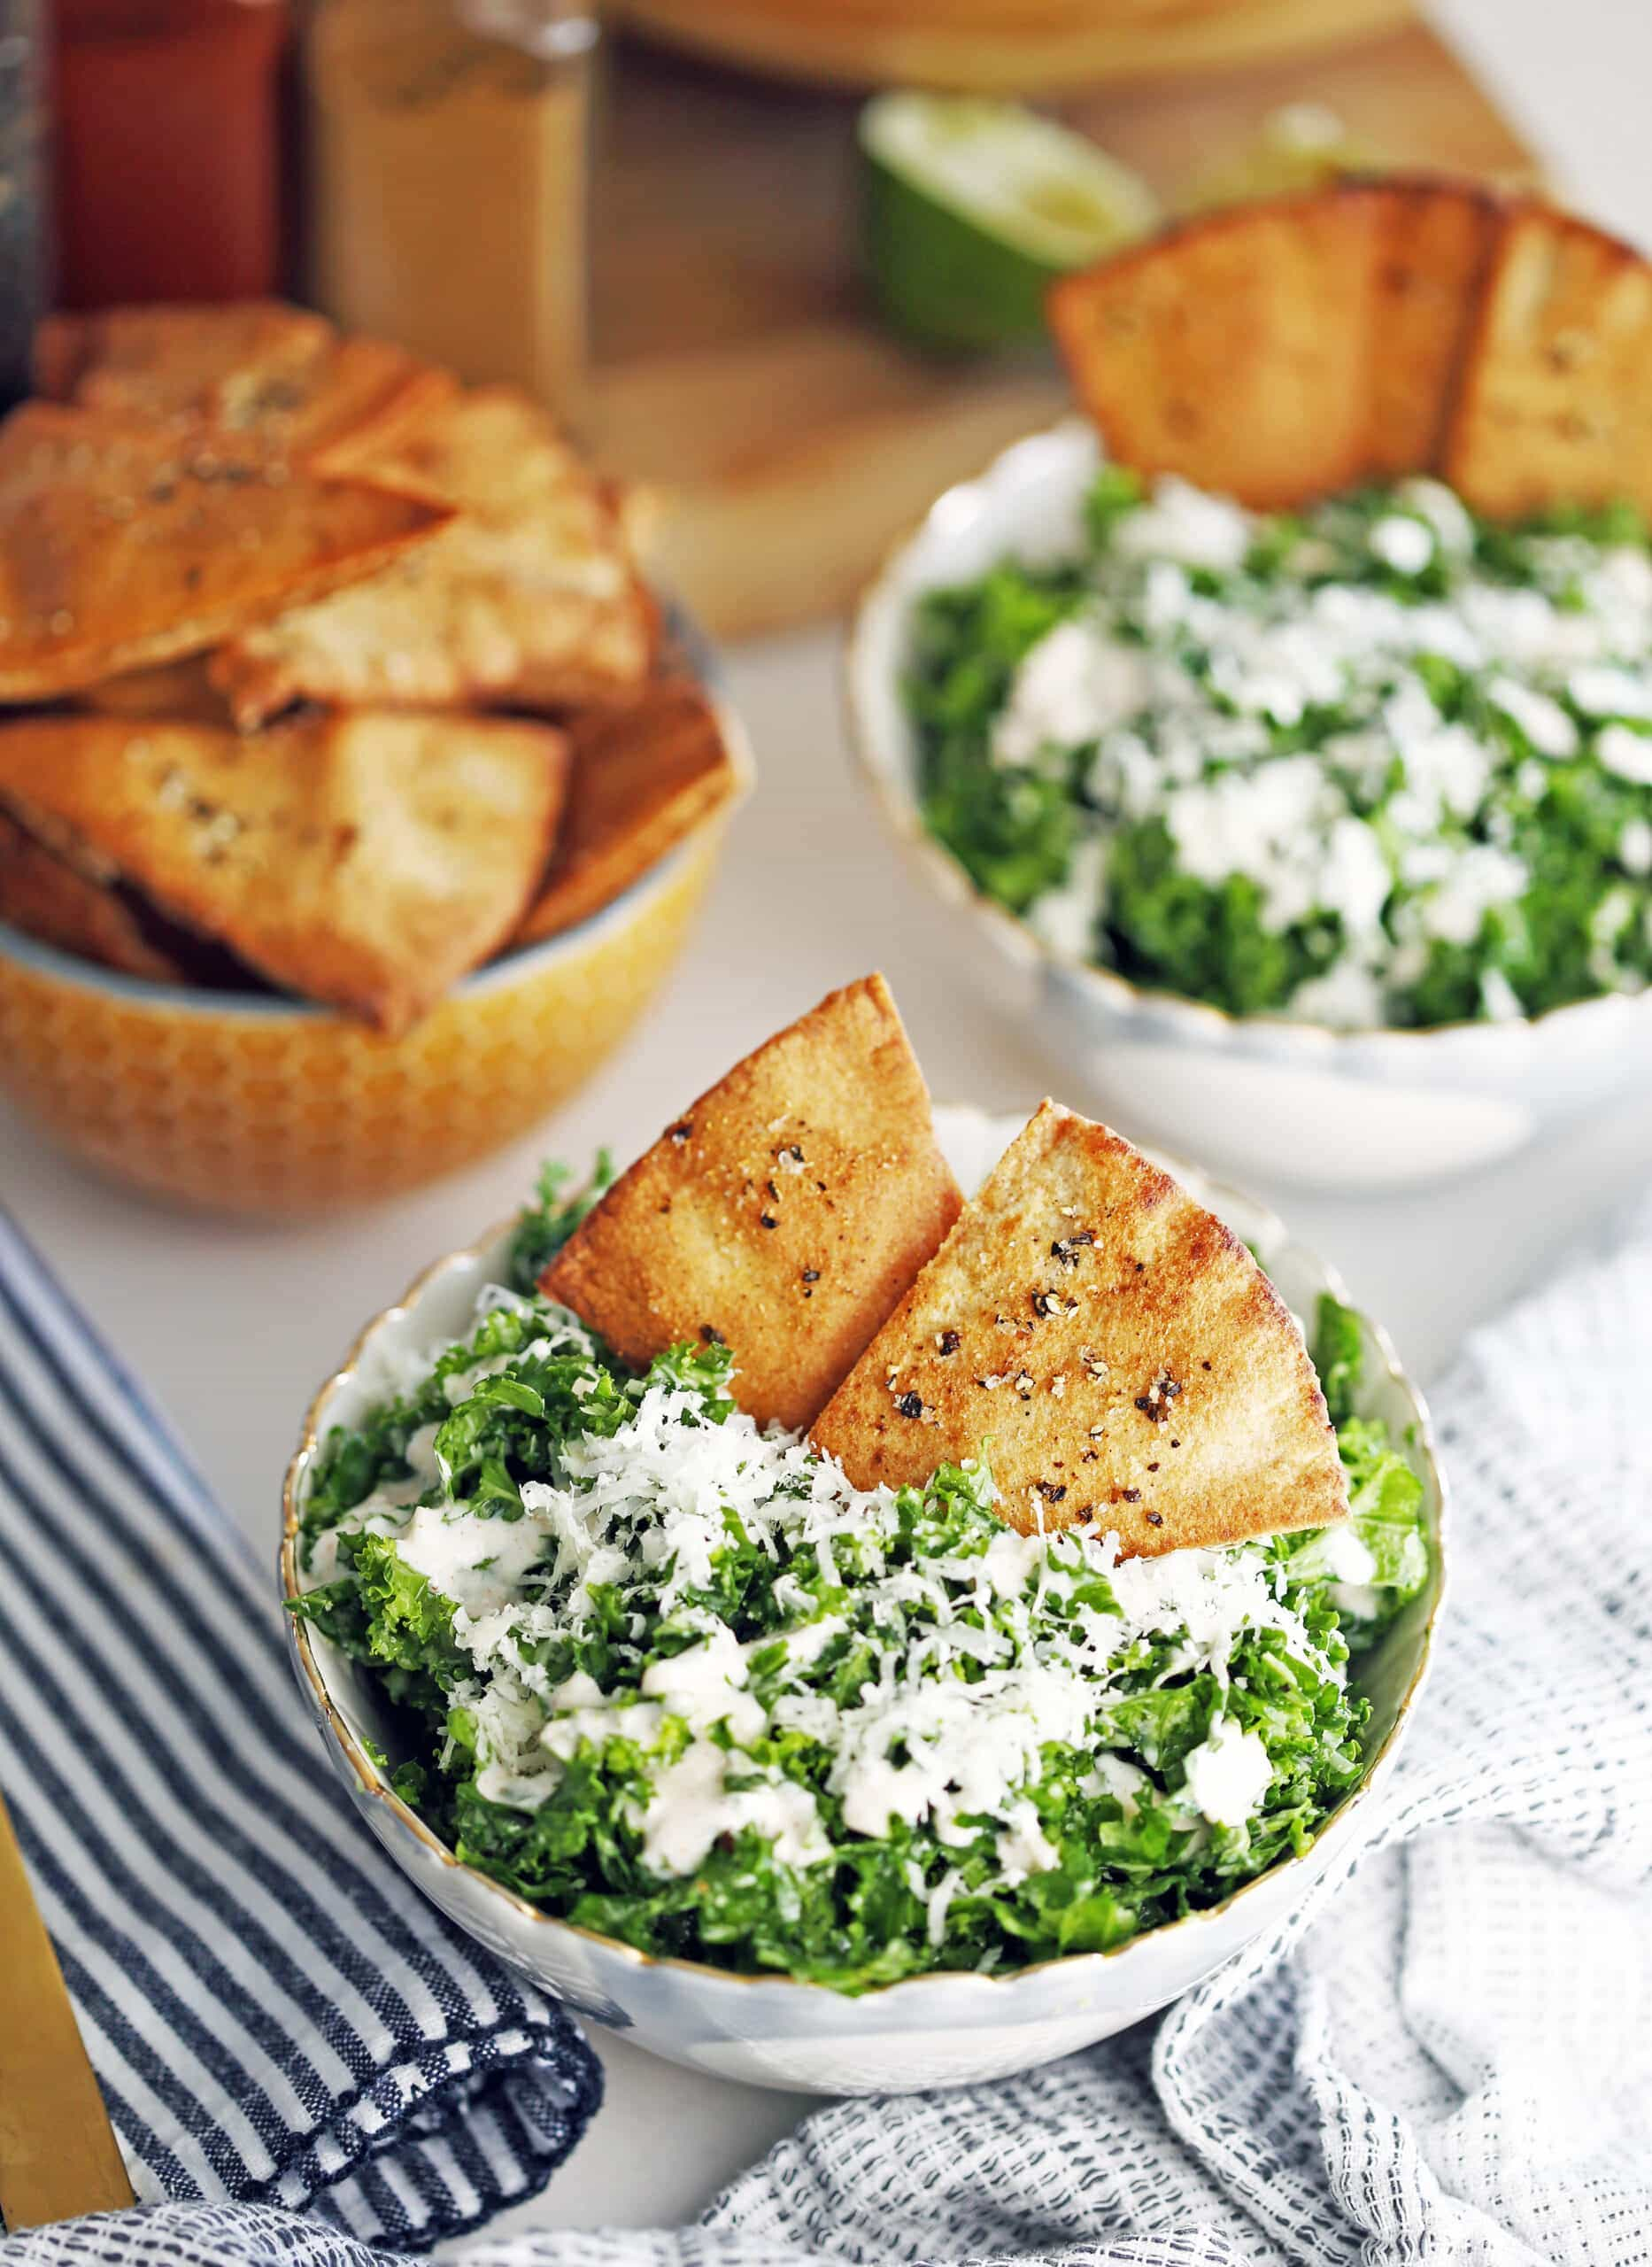 Kale parmesan salad with yogurt dressing and pita chips in two bowls and another bowl full of pita chips.